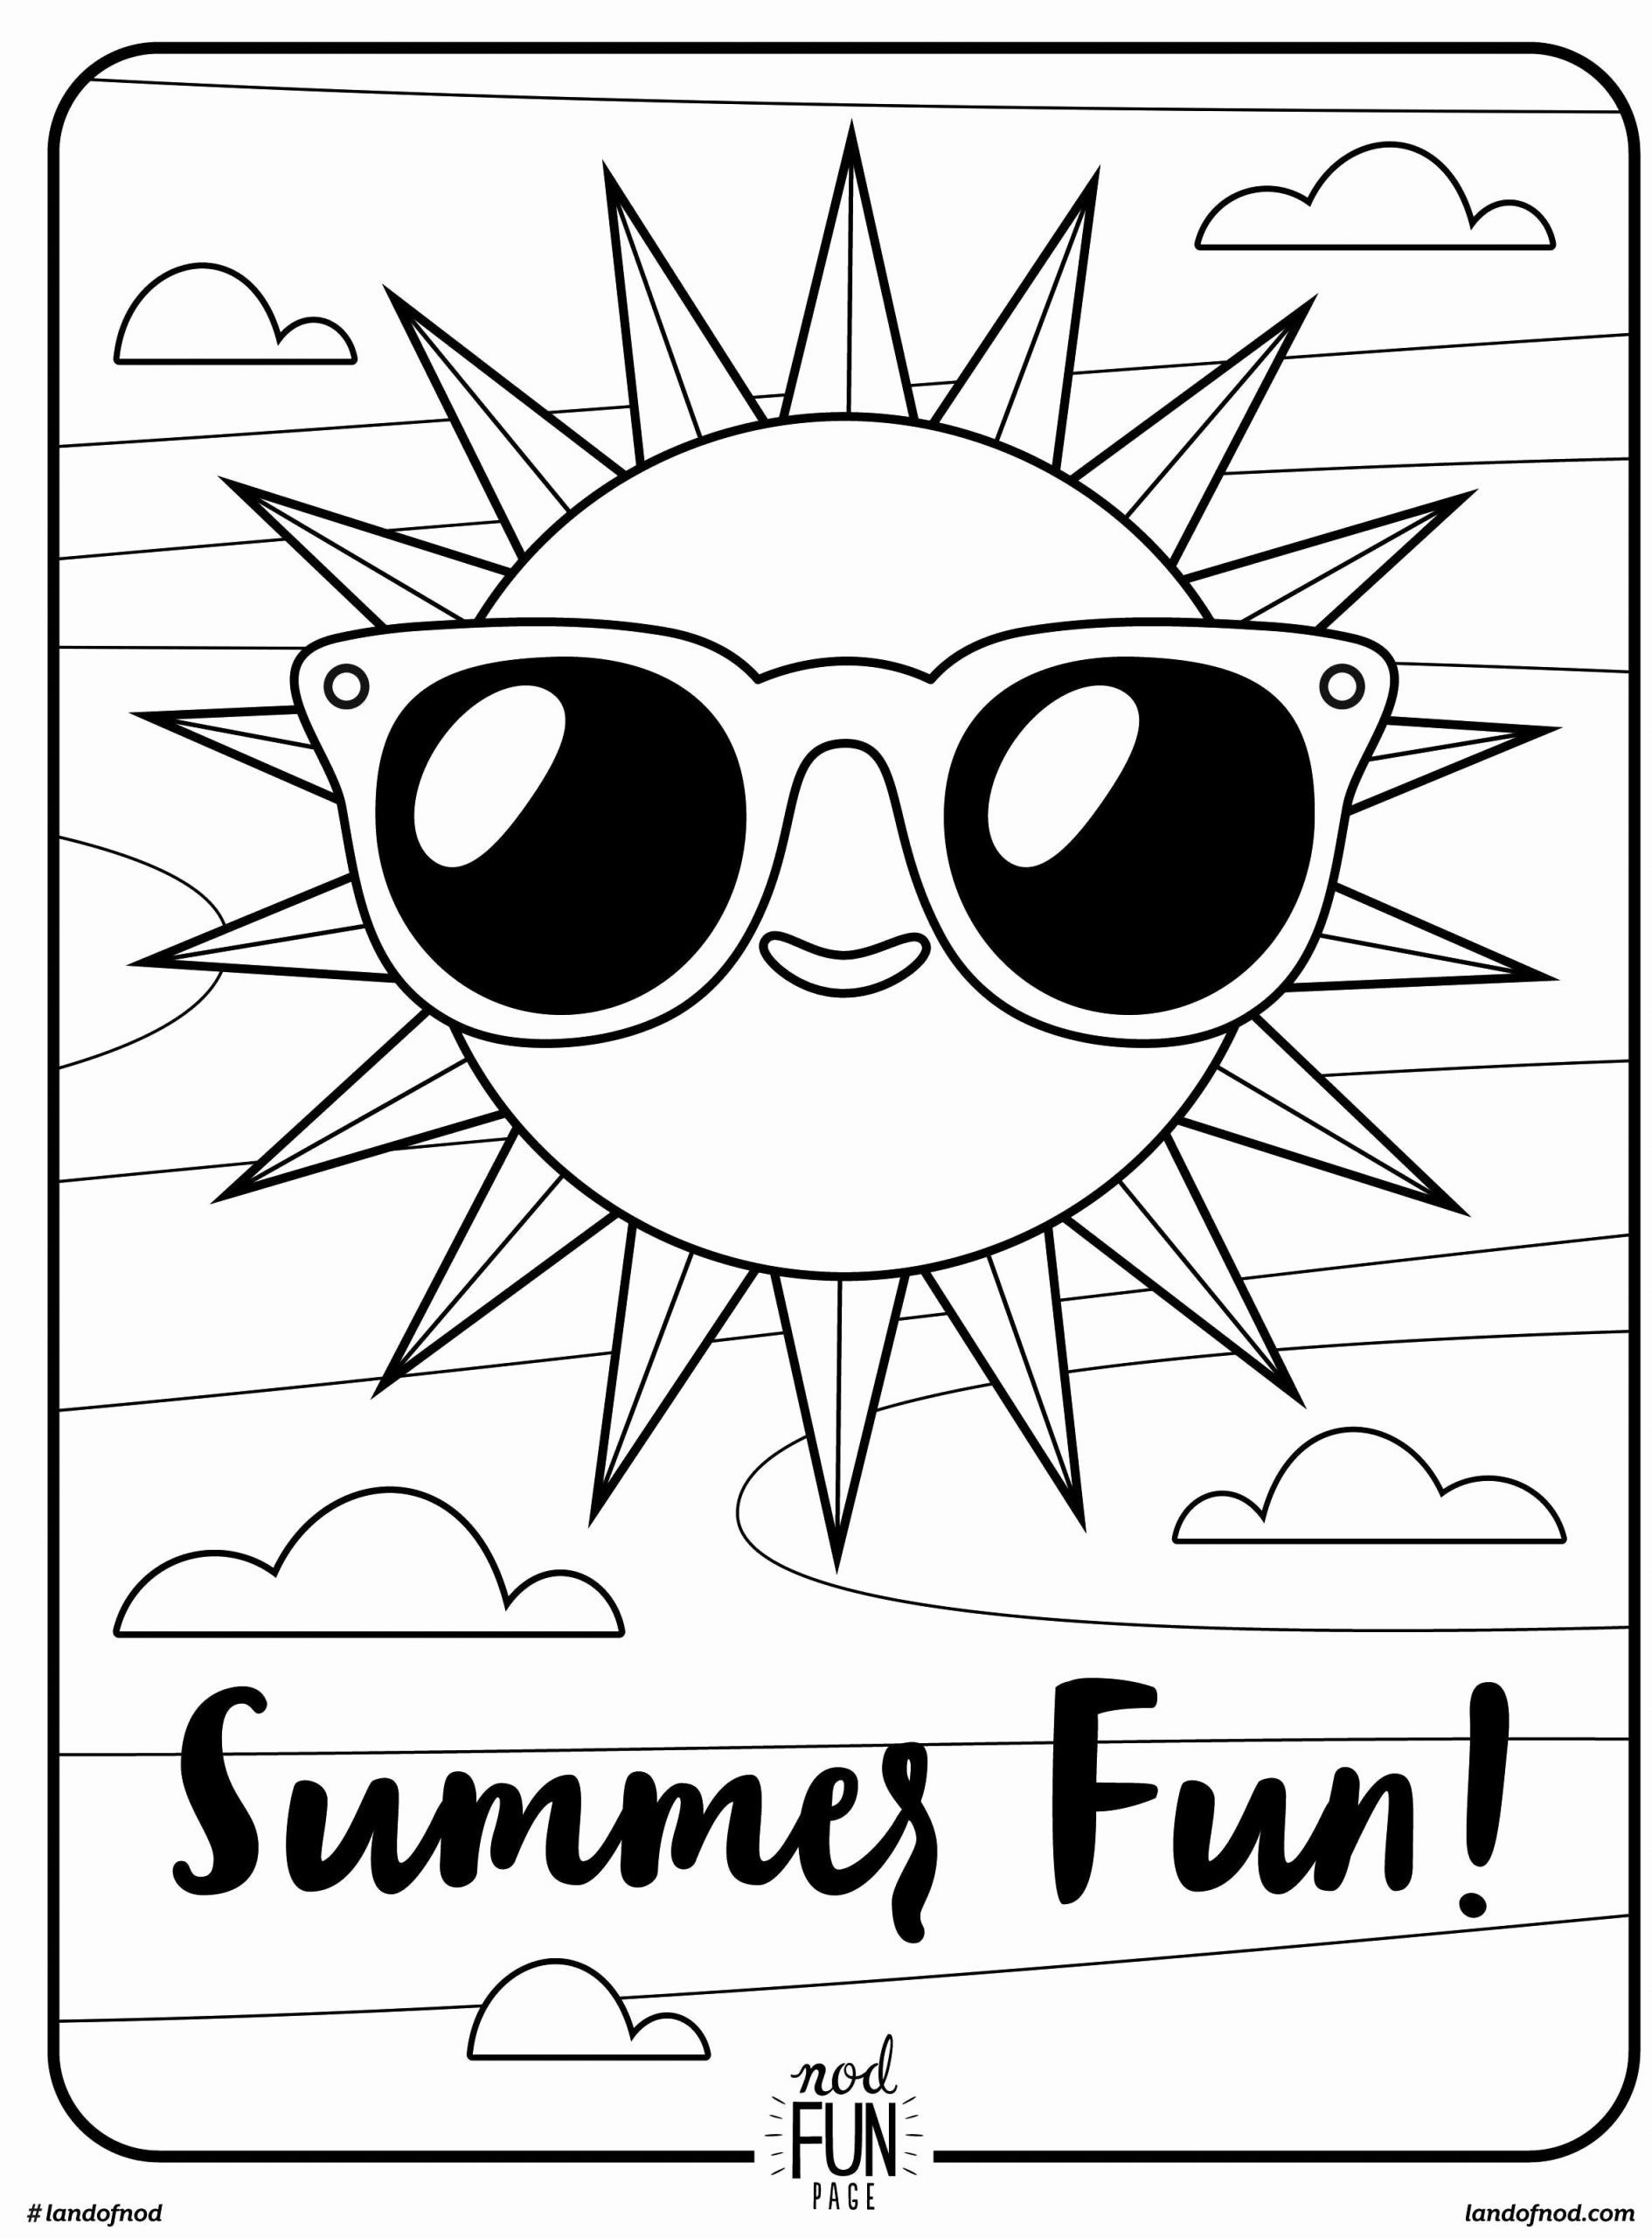 Summer Fun Coloring Pages In